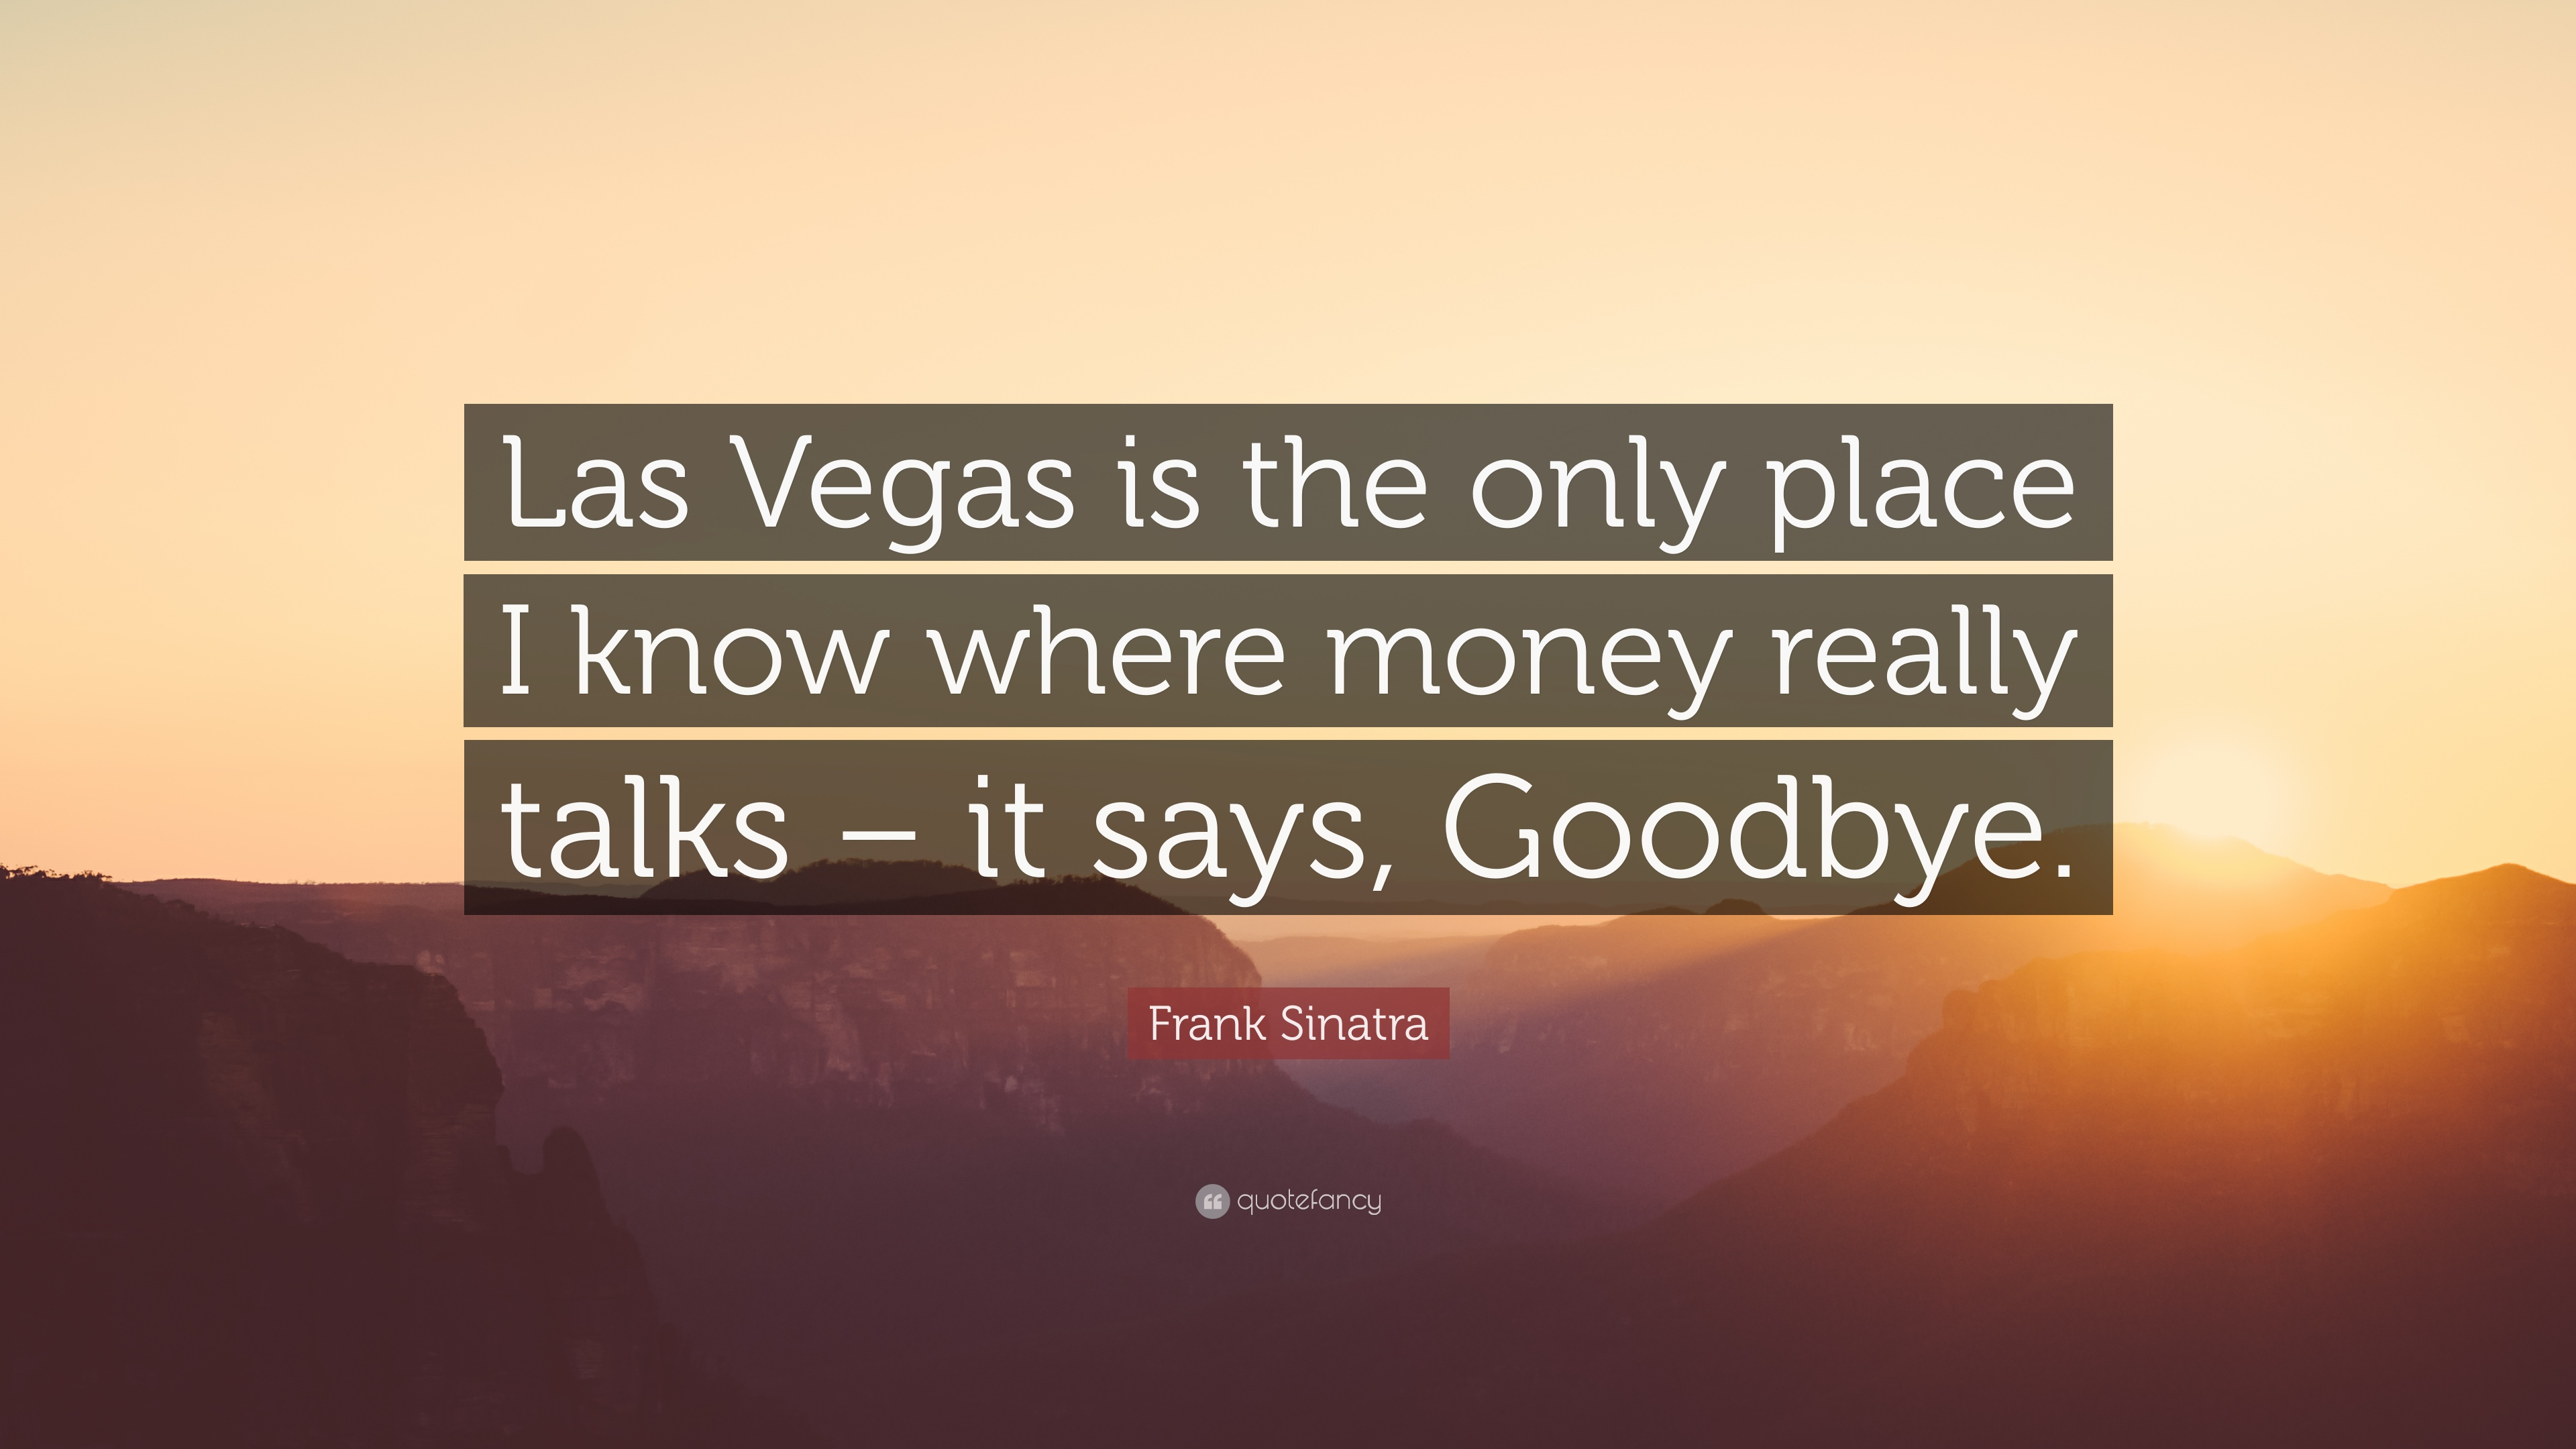 Las Vegas Quotes And Sayings